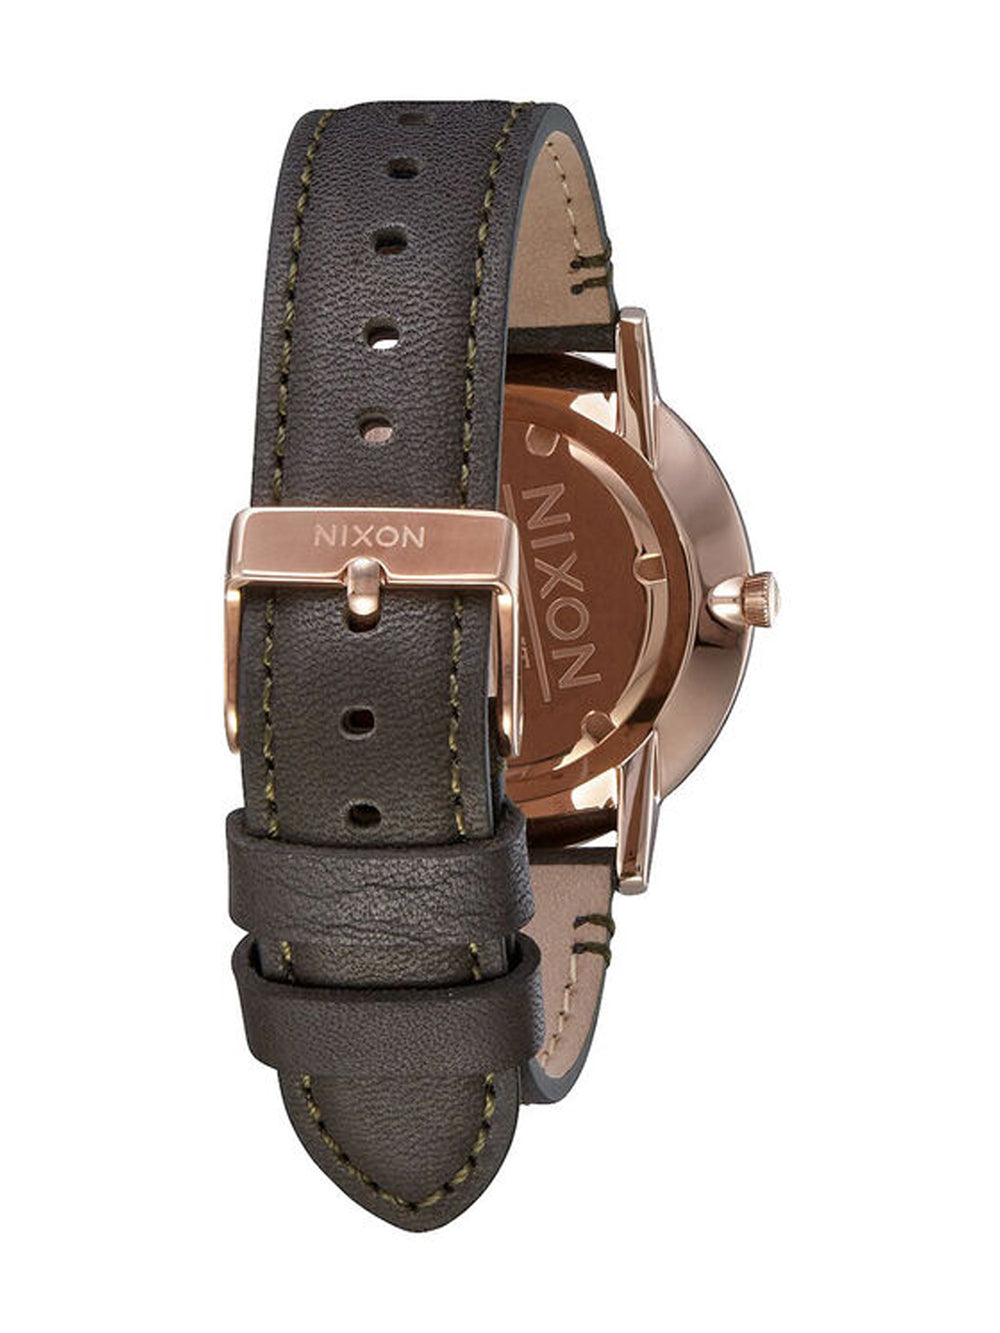 MENS PORTER LEATHER - ROSE GOLD/GUN WATCH